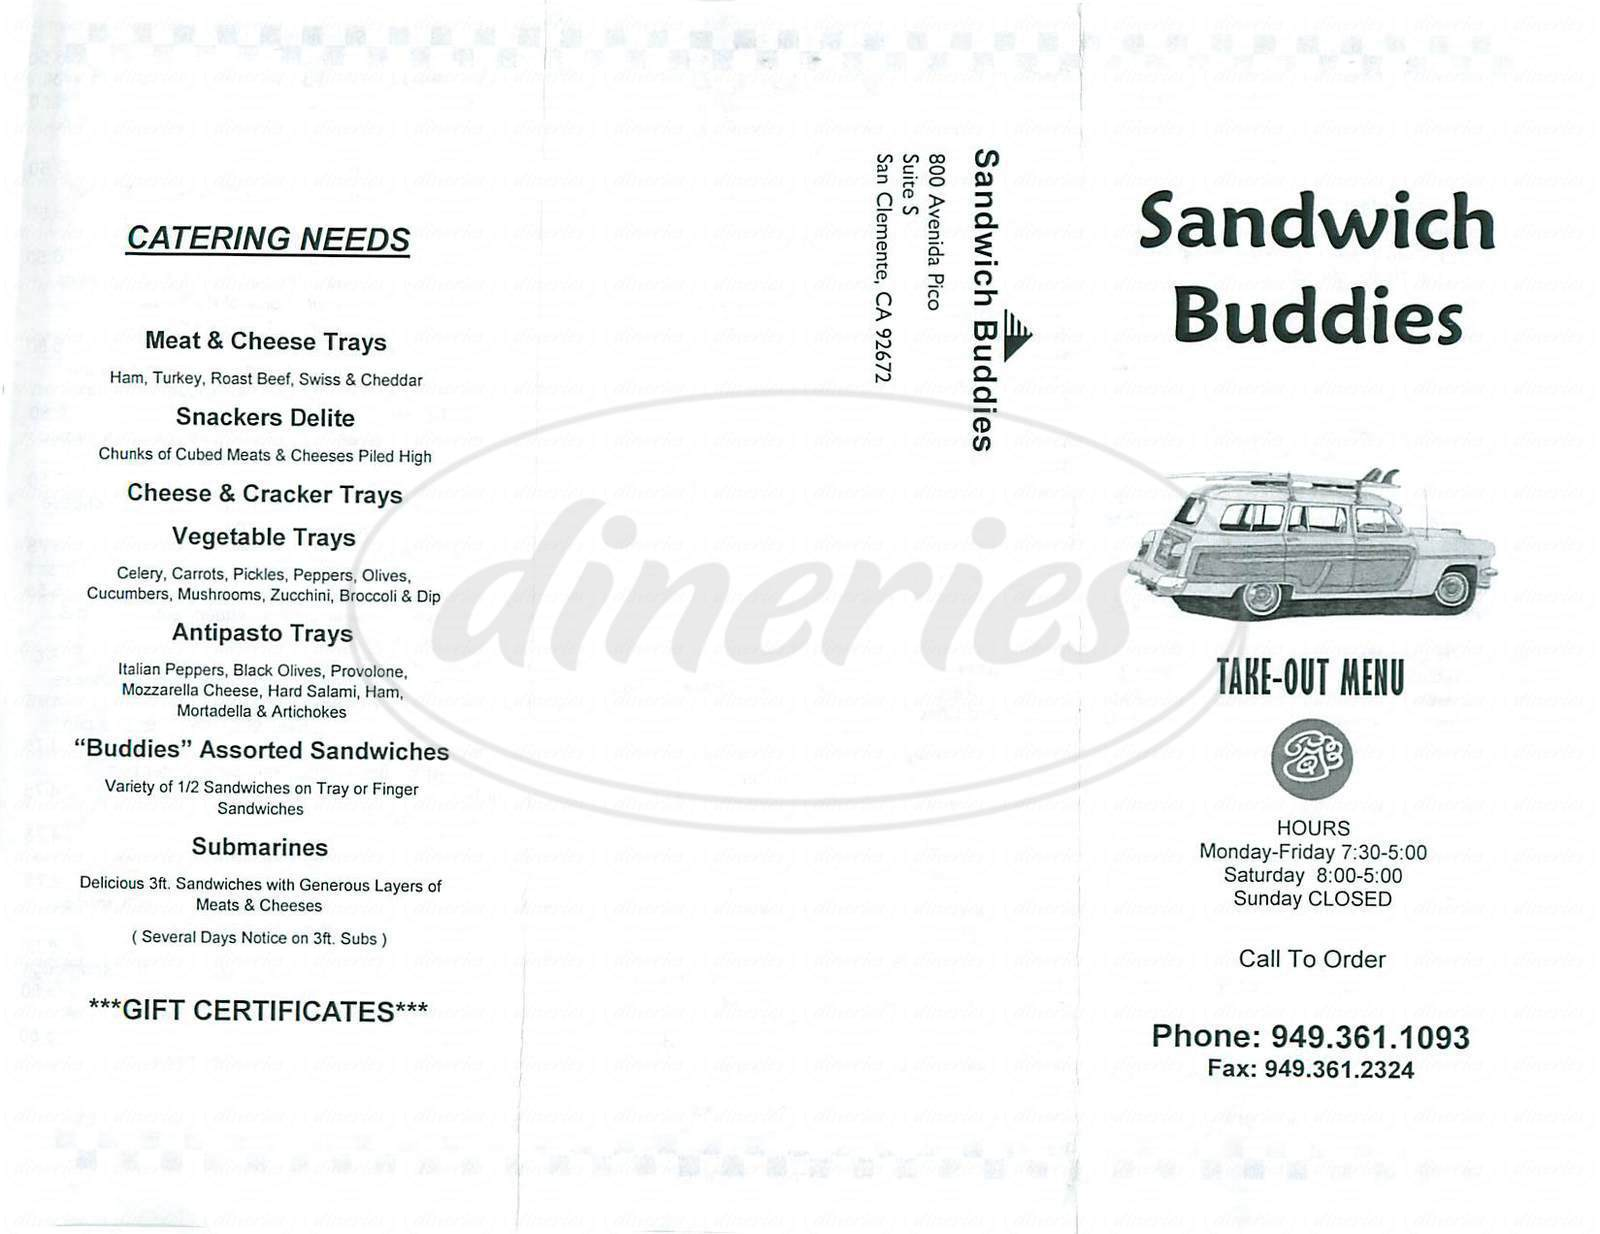 menu for Sandwich Buddies